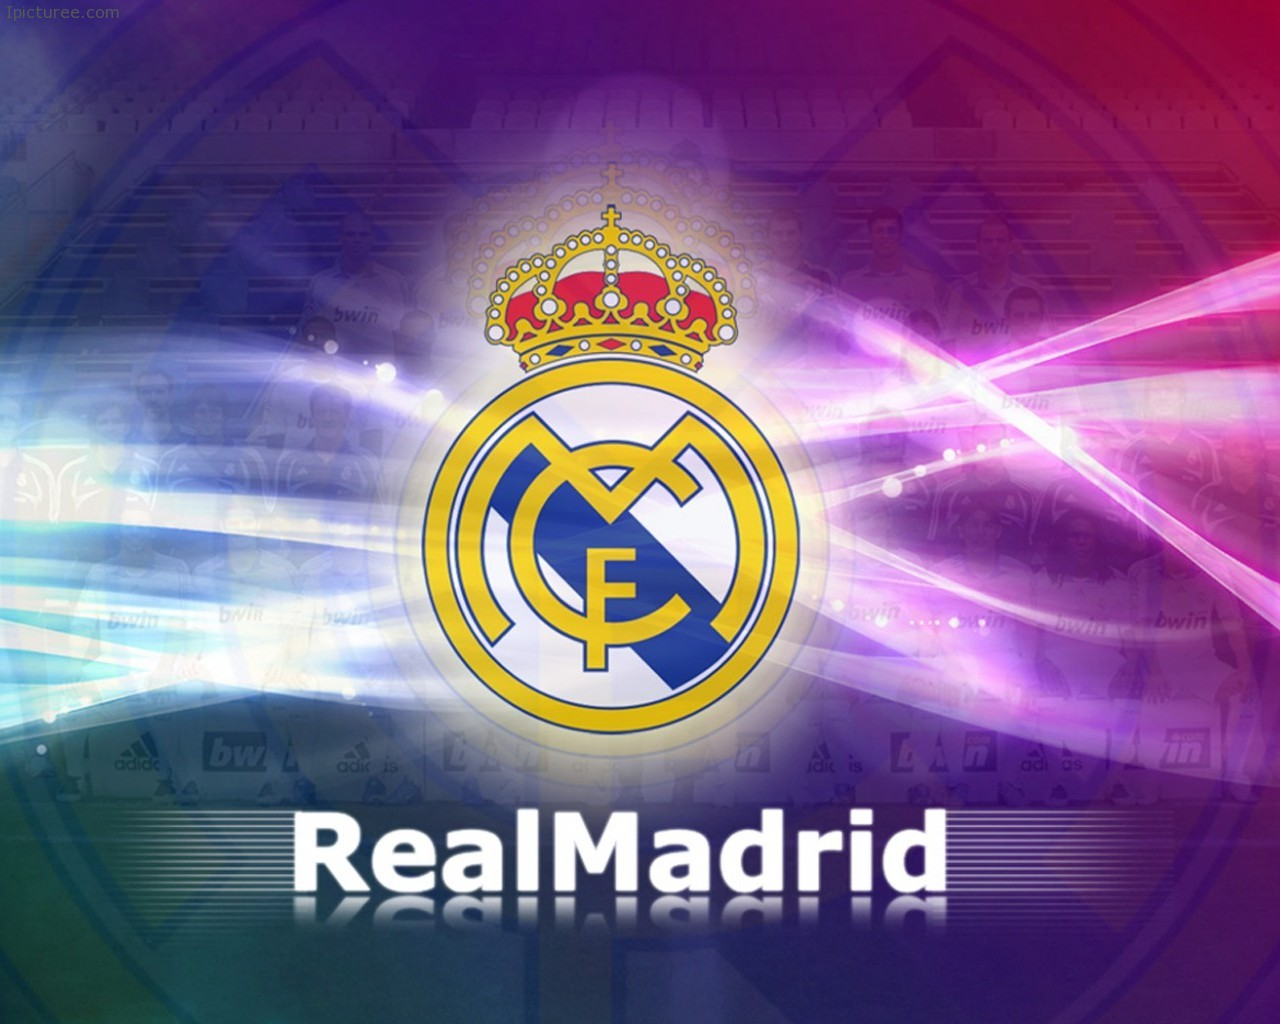 Real Madrid Pictures: Real Madrid C.F Logo